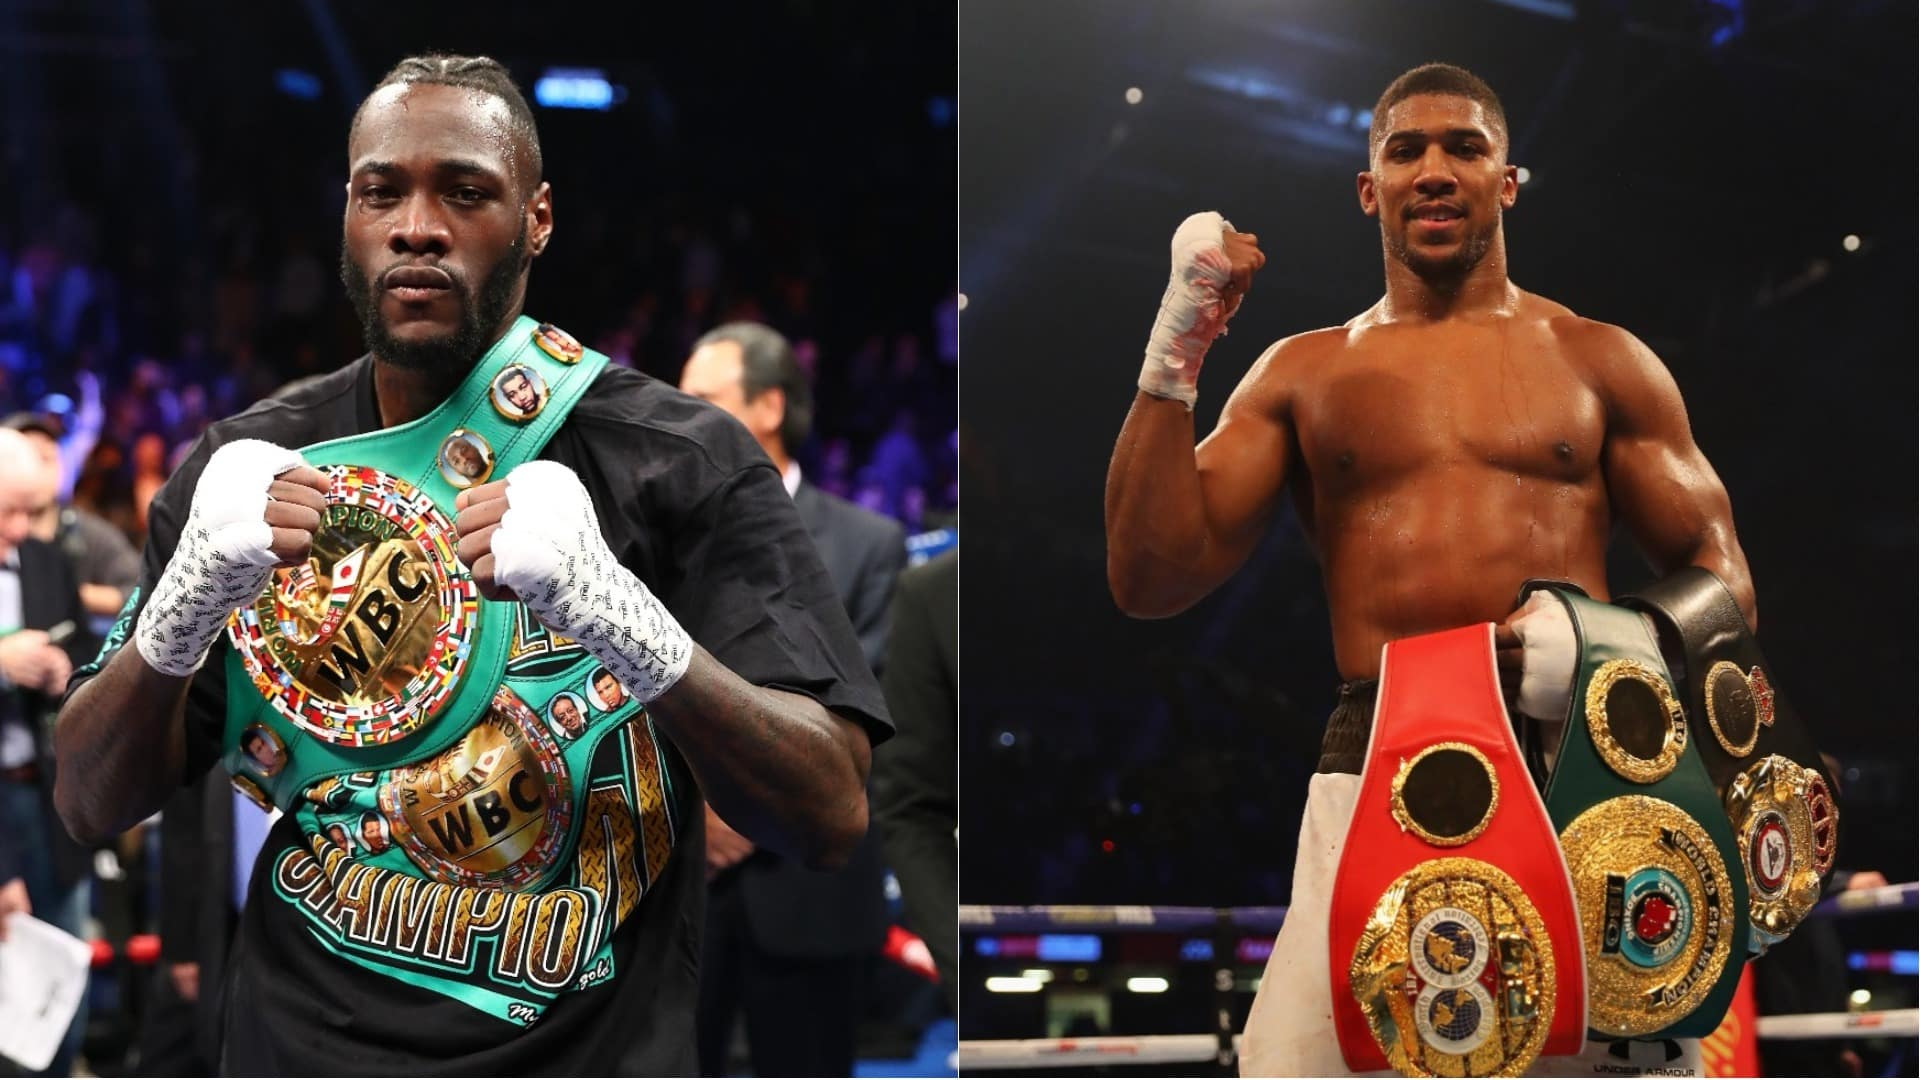 Deontay Wilder vs Anthony Joshua